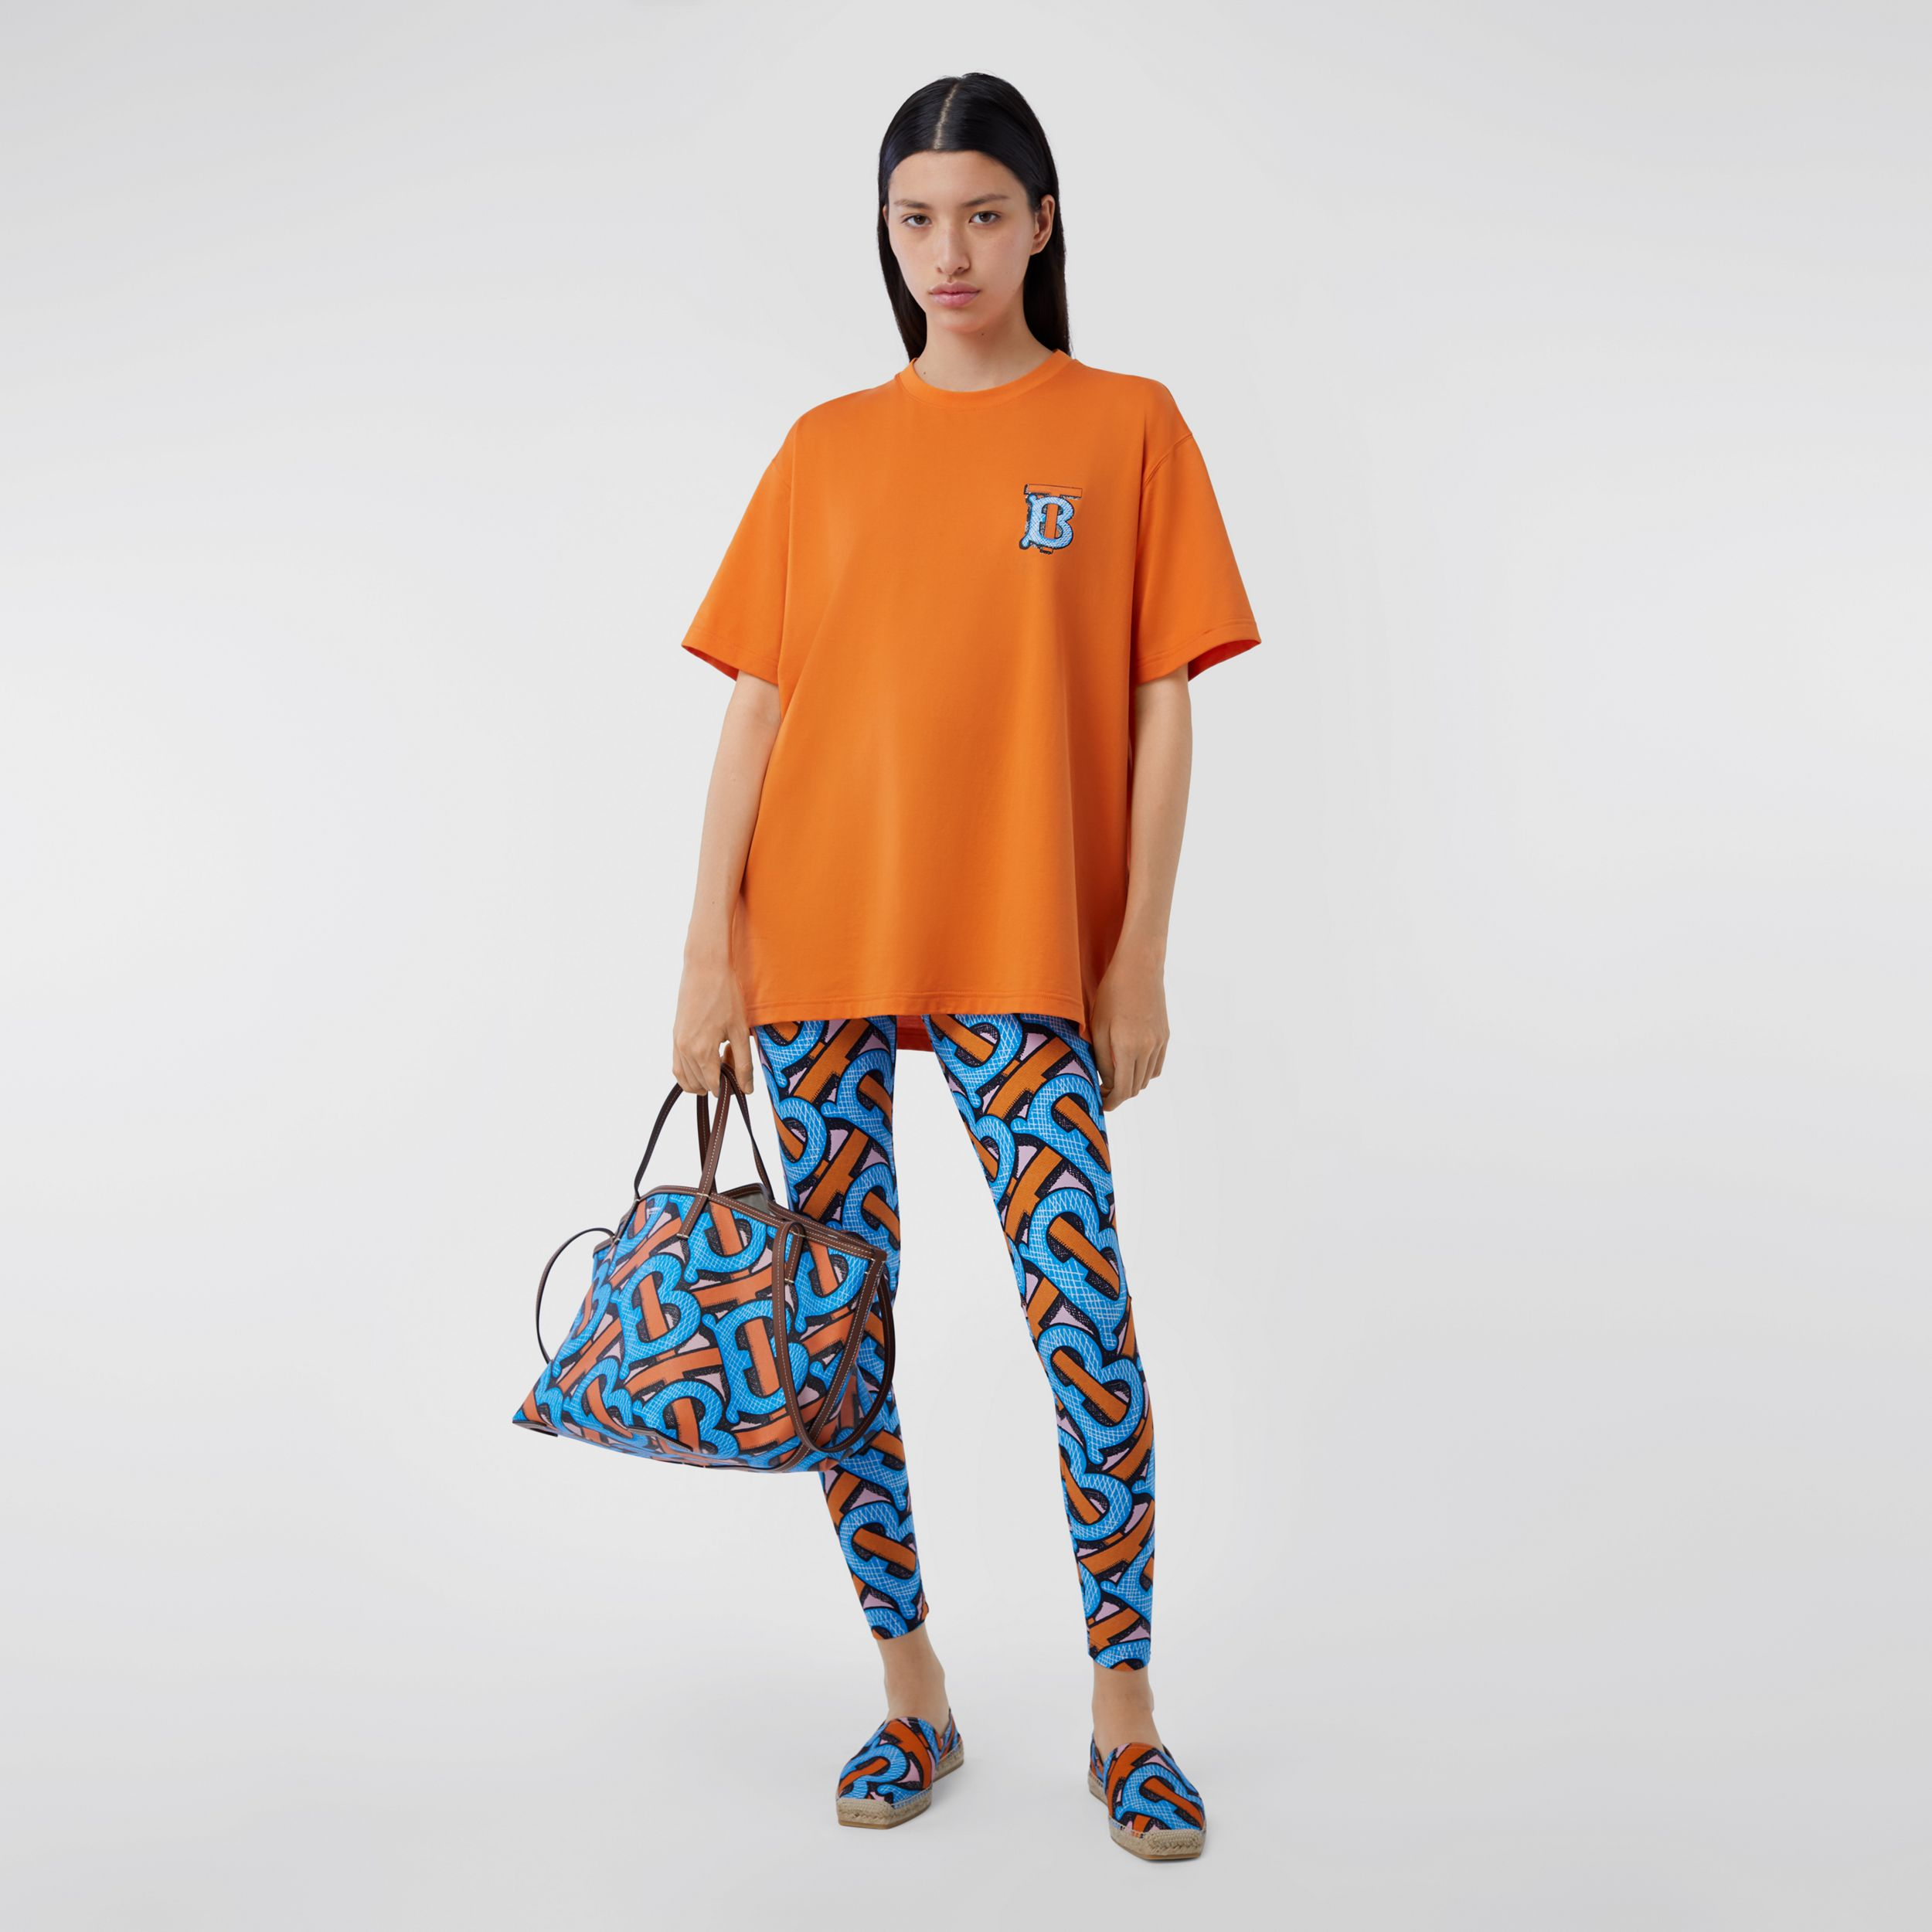 Monogram Motif Cotton T-shirt – Unisex in Bright Orange | Burberry - 4